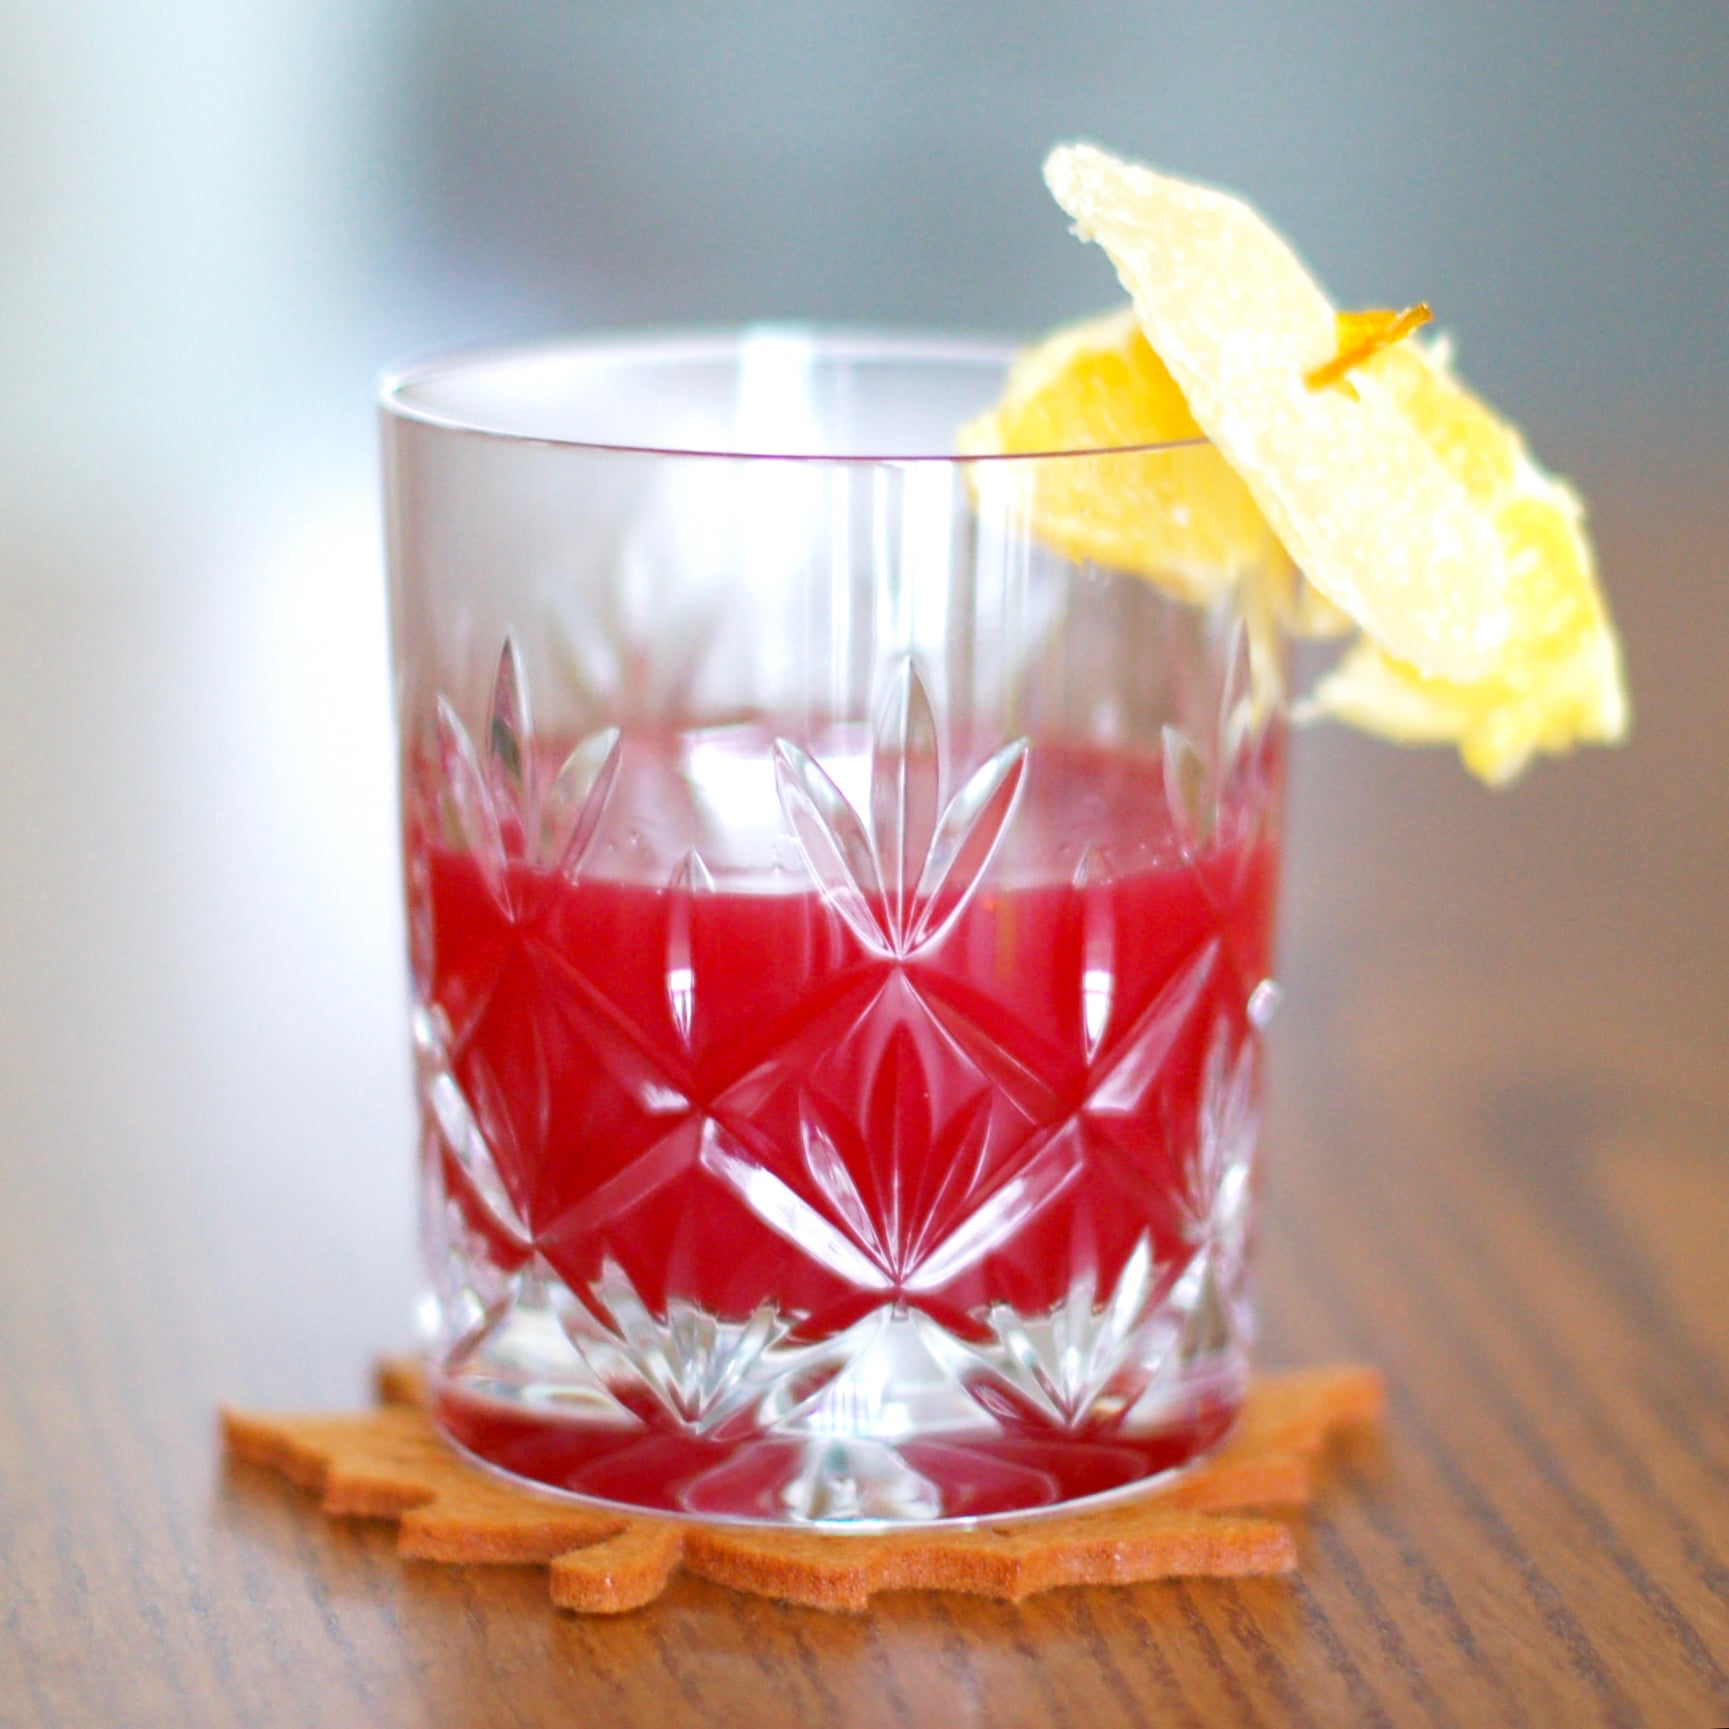 Warm up with a Cran-Toddy, a cranberry cider cocktail recipe to enjoy all winter long!